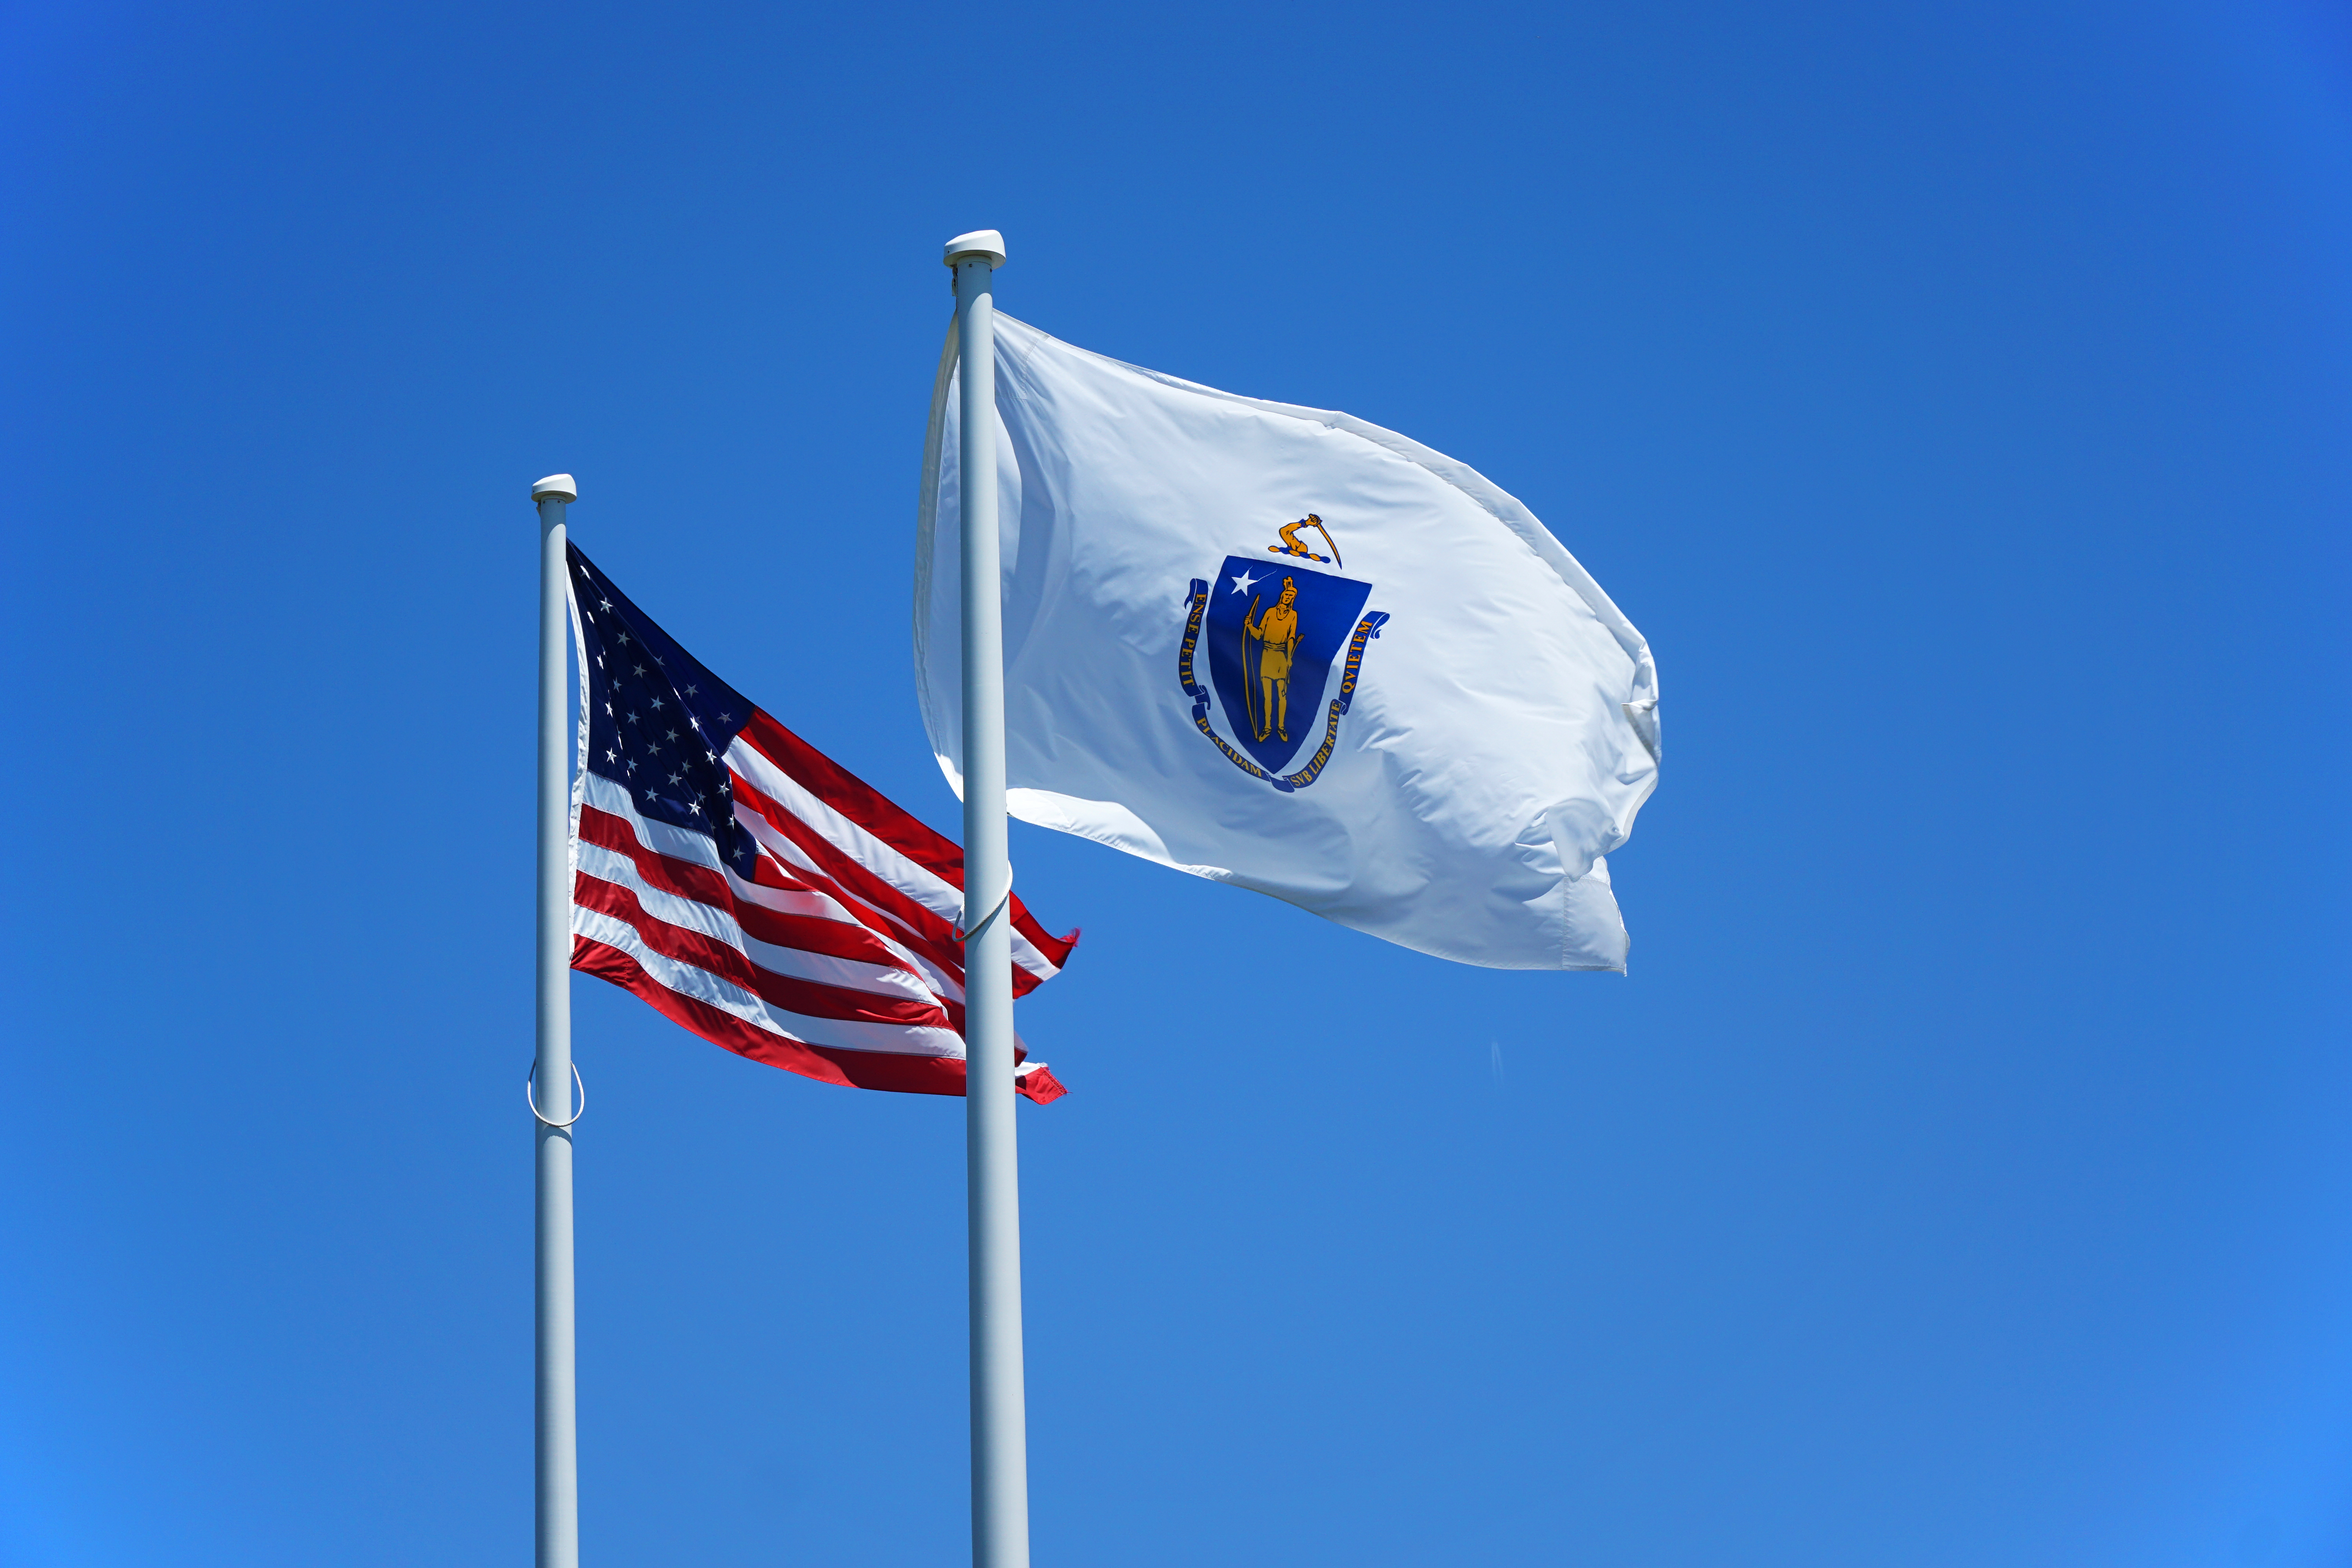 What would go on a new Massachusetts state flag?